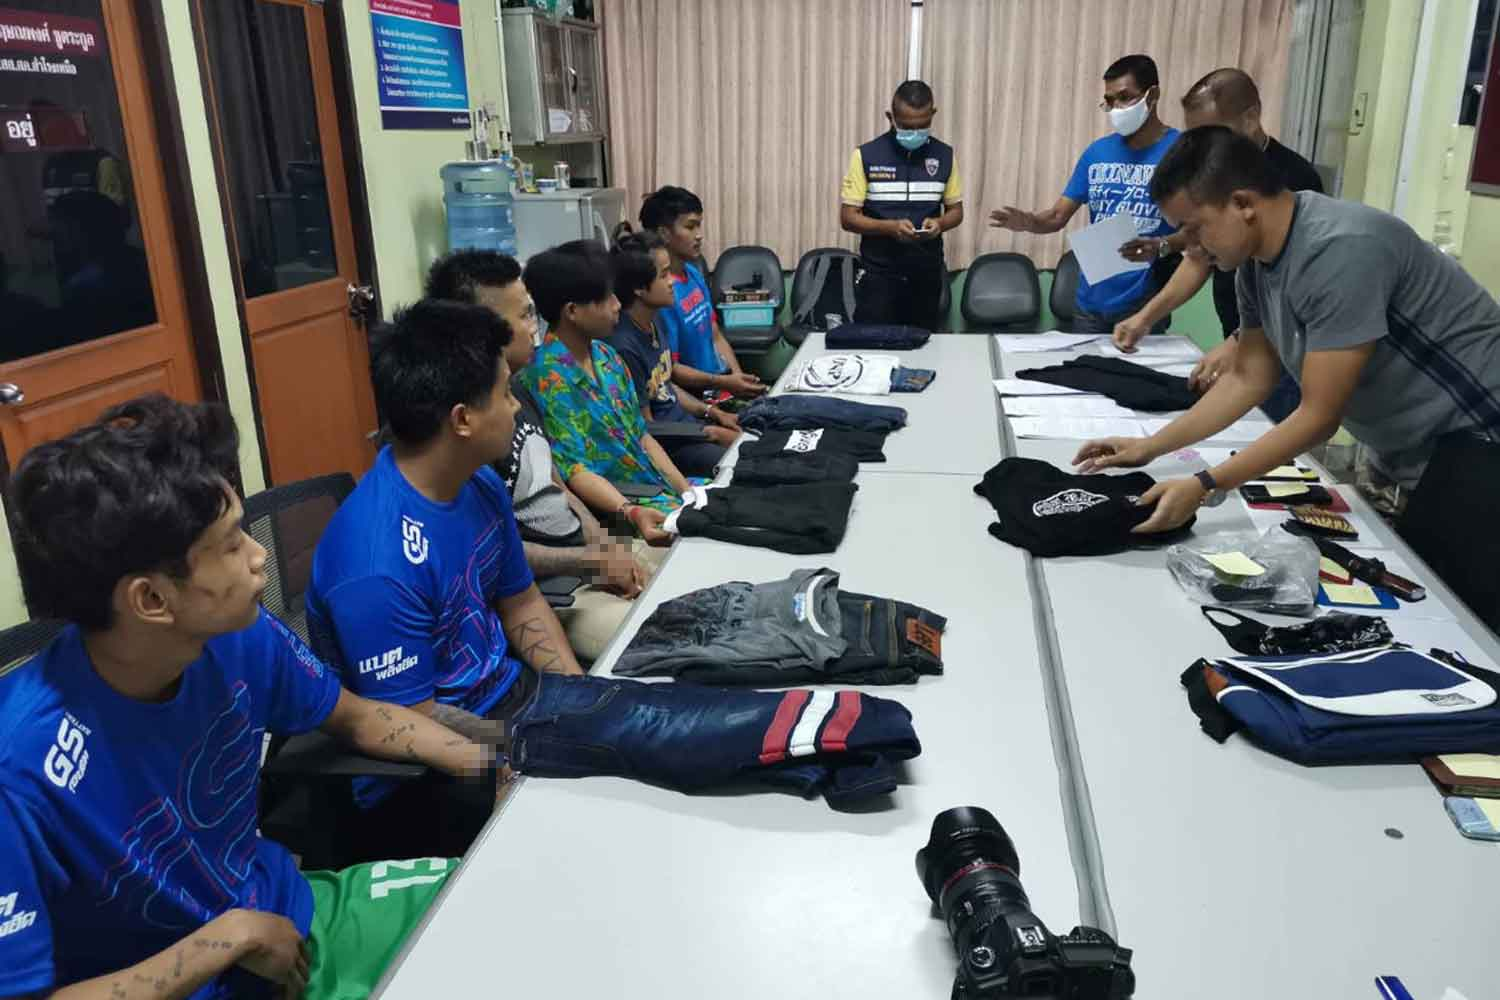 Six Myanmar men, seated left, were brought to Samrong Nua police station in Samut Prakan for questioning after a brawl at the Imperial World Samrong department store in which a Myanmar man was killed on Sunday. (Photo: Sutthiwit Chayutworakan)